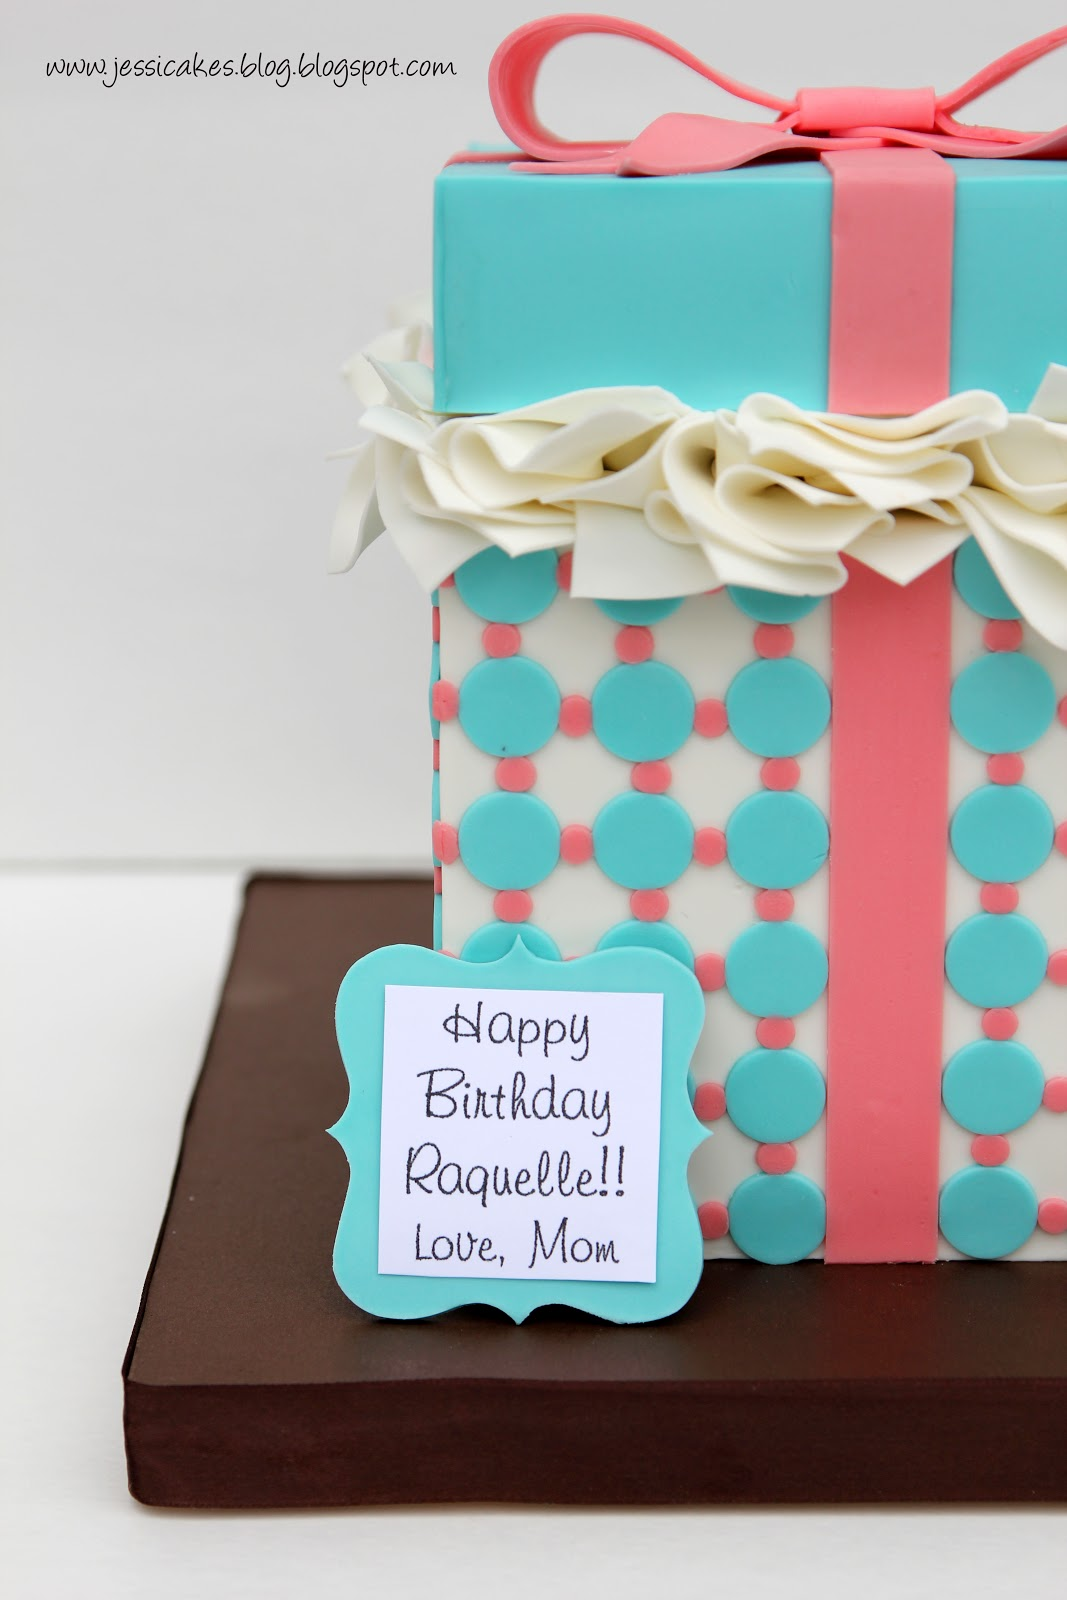 Gift box cake tutorial jessica harris cake design my prayer is that ithat wewould capture these moments and not let them pass these precious few years that we have left to hold them tell them we love negle Image collections